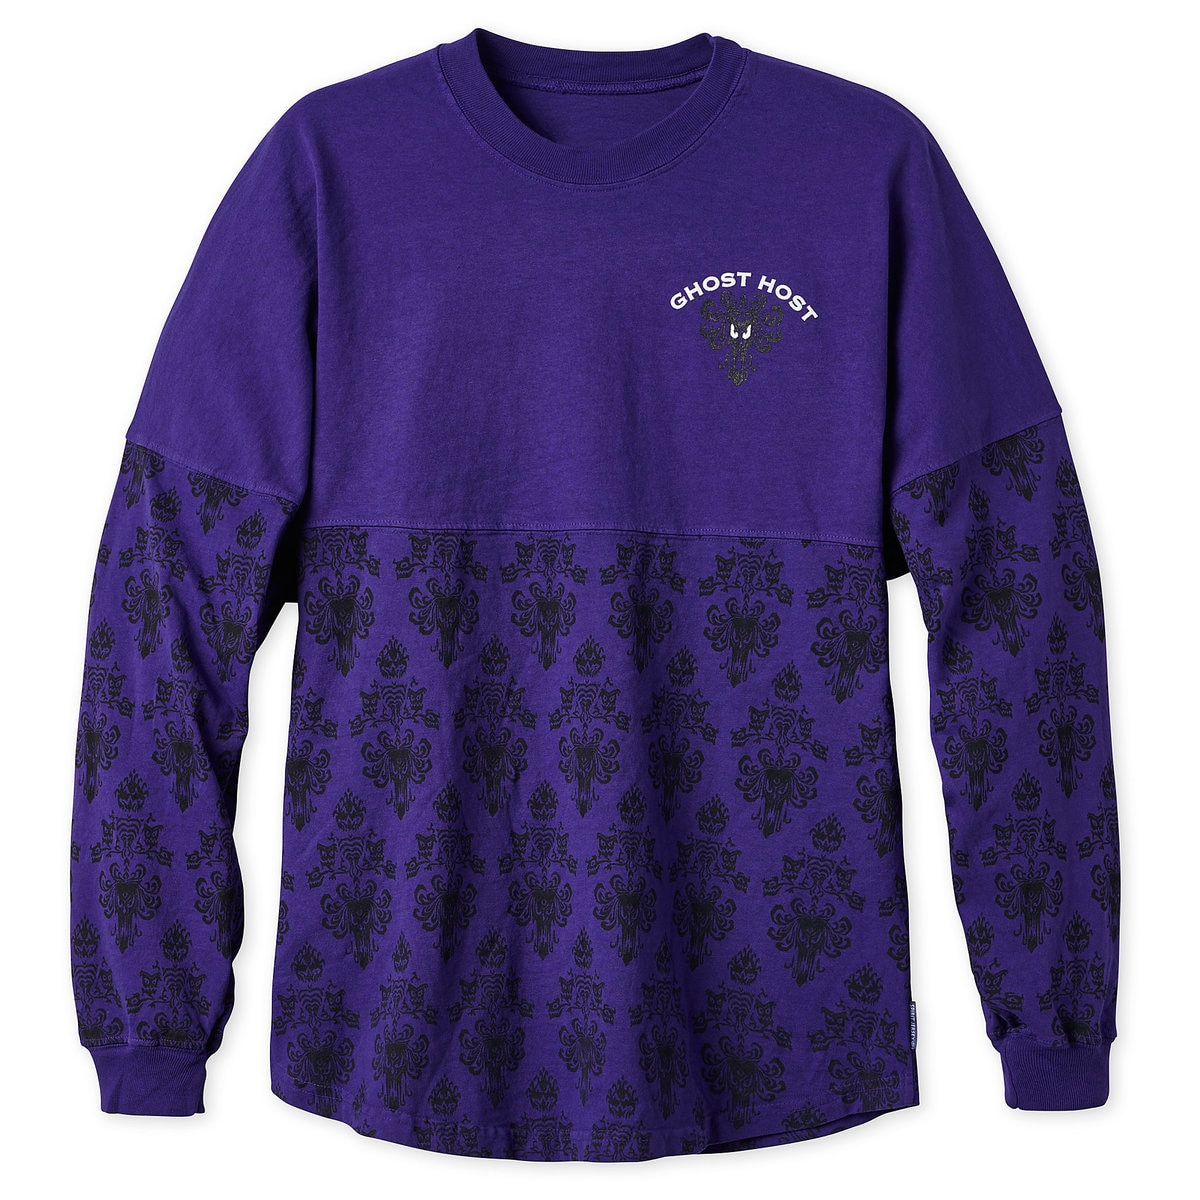 ab7aa5b8 Product Image of The Haunted Mansion Spirit Jersey for Adults # 1